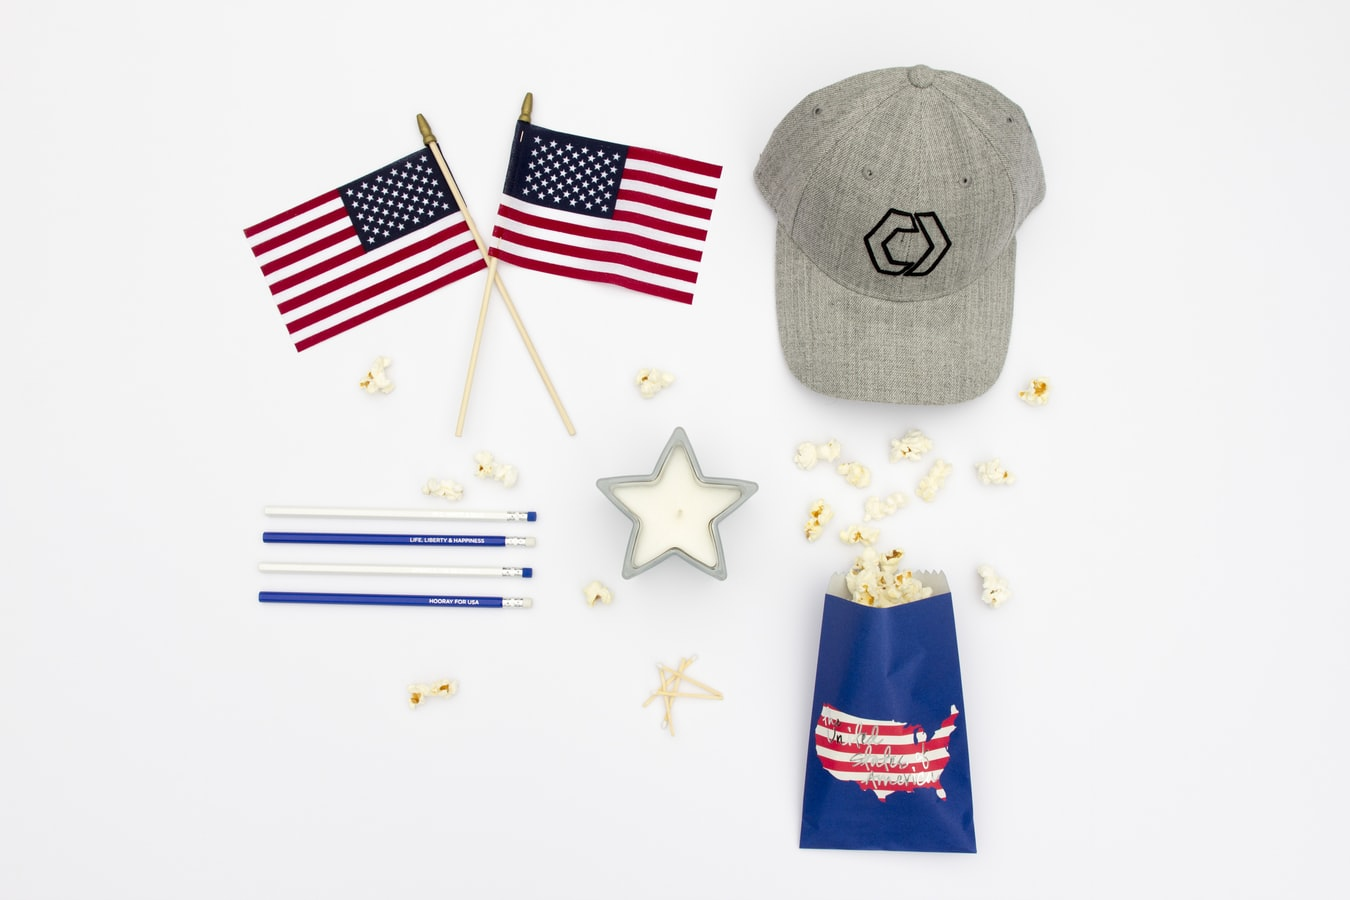 Show Your Patriotism With Independence Day Gifts